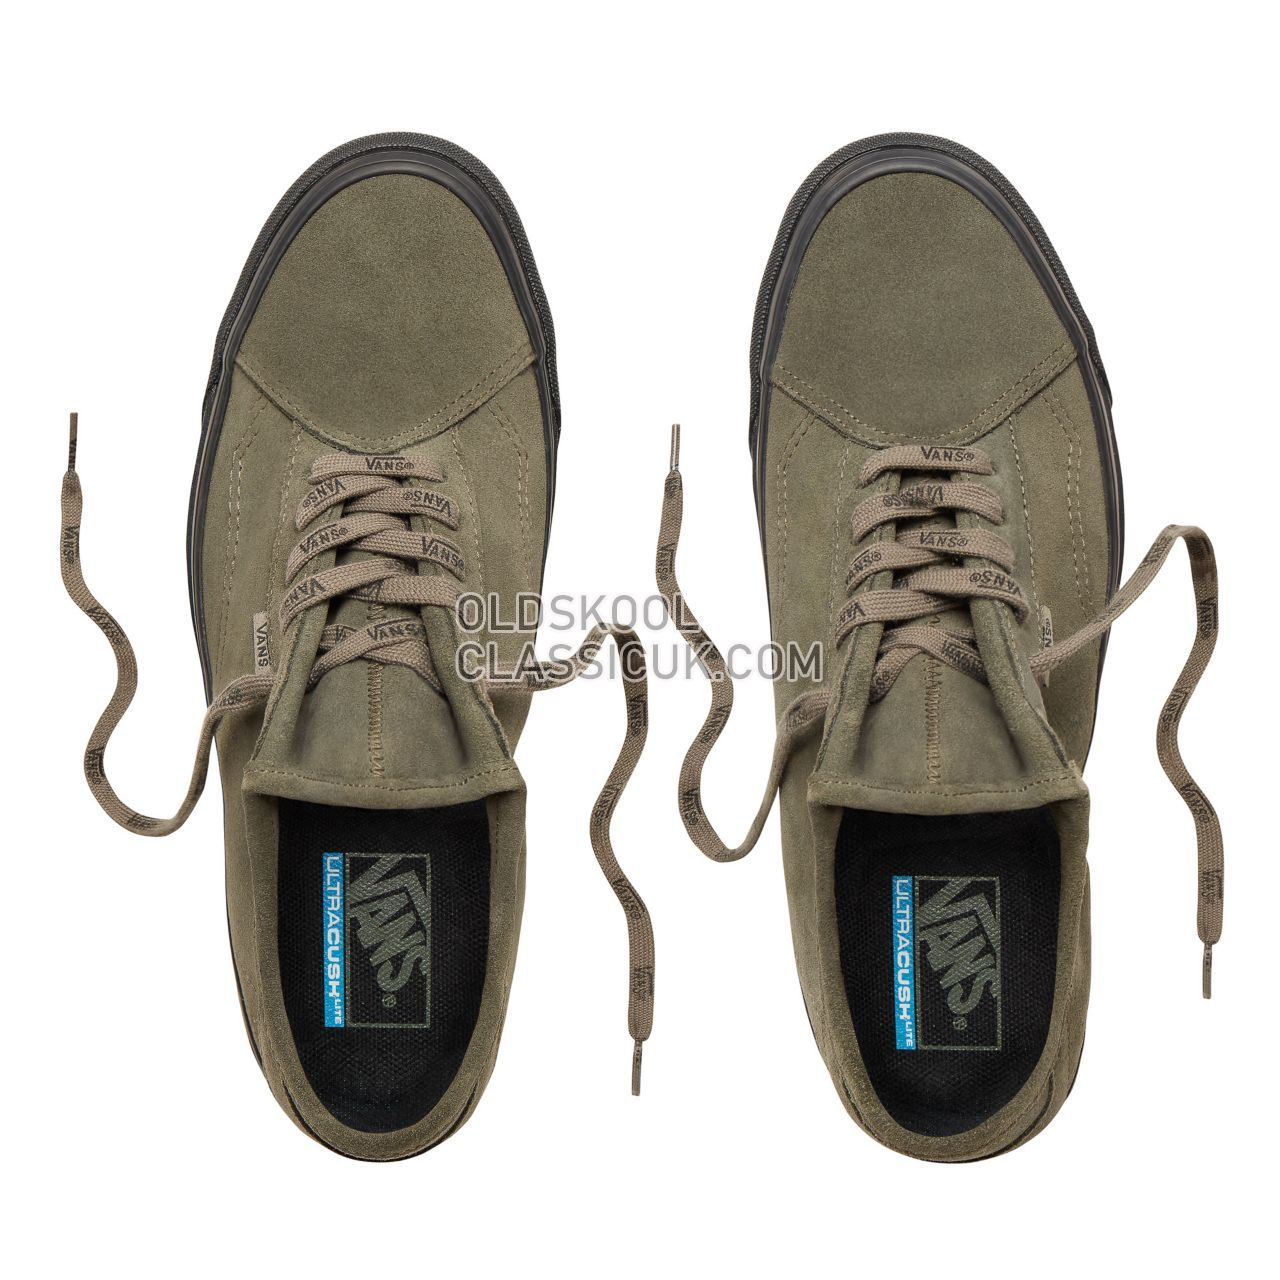 Vans Call Out Diamo Ni Sneakers Mens (Call Out) Dusty Olive/Black VN0A3TKDUMB Shoes